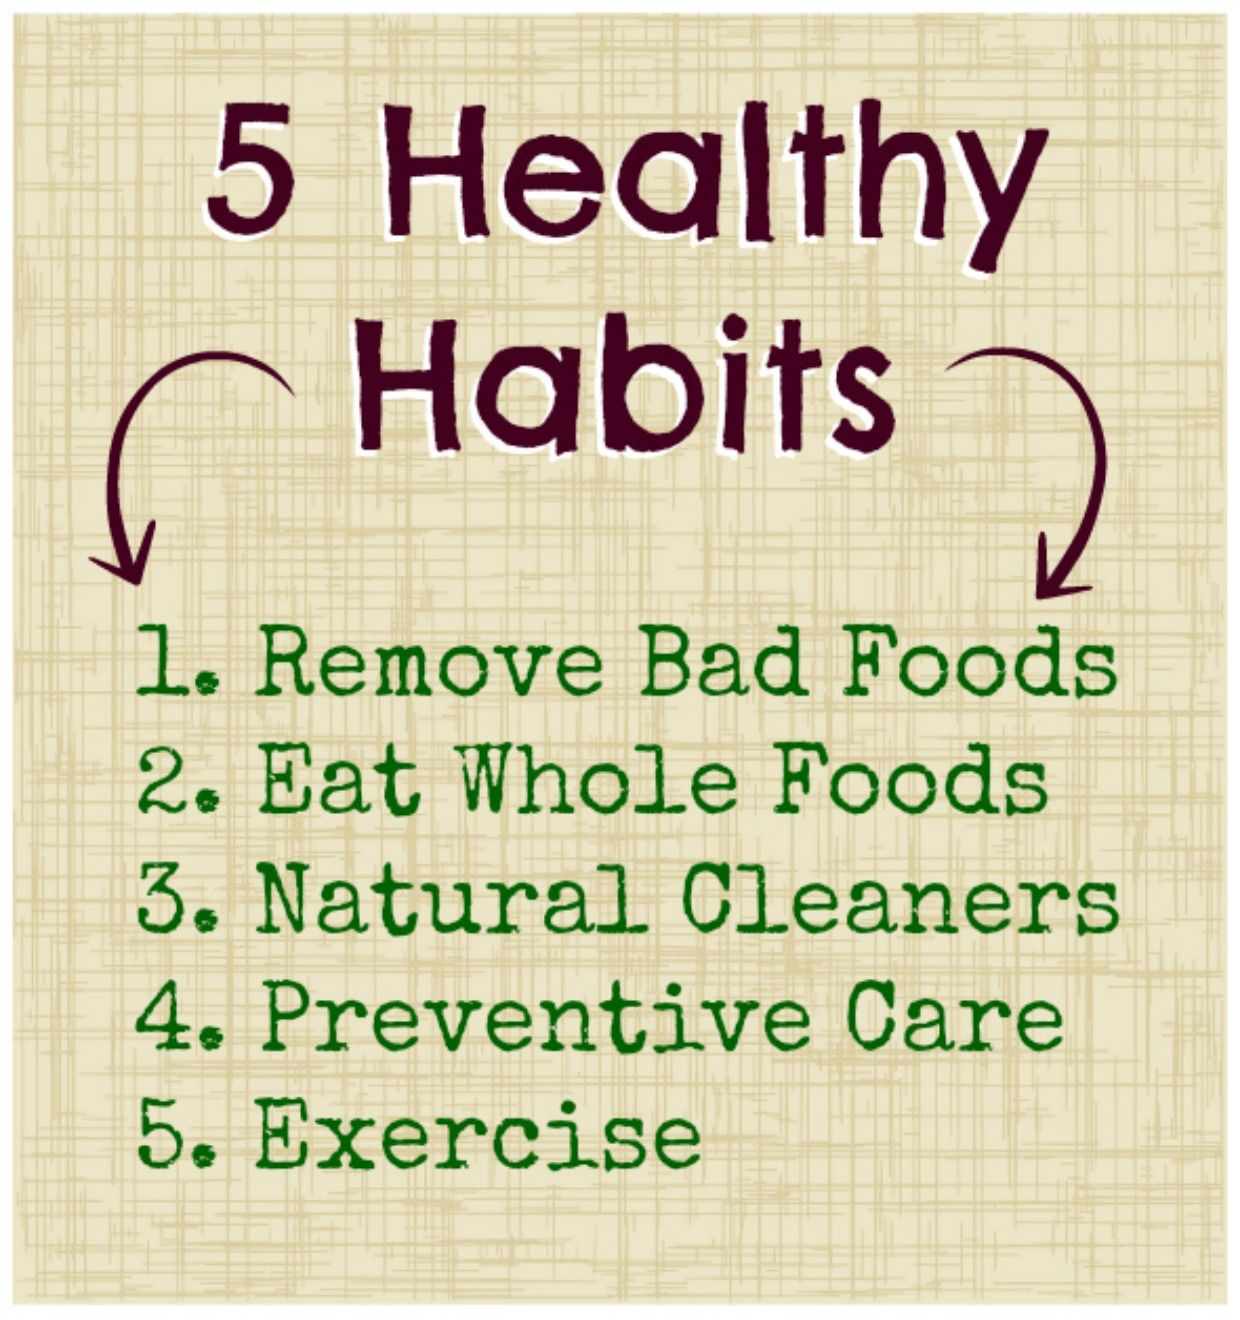 images about health care tips on pinterest  health benefits   images about health care tips on pinterest  health benefits of bananas healthy lifestyle and healthy food